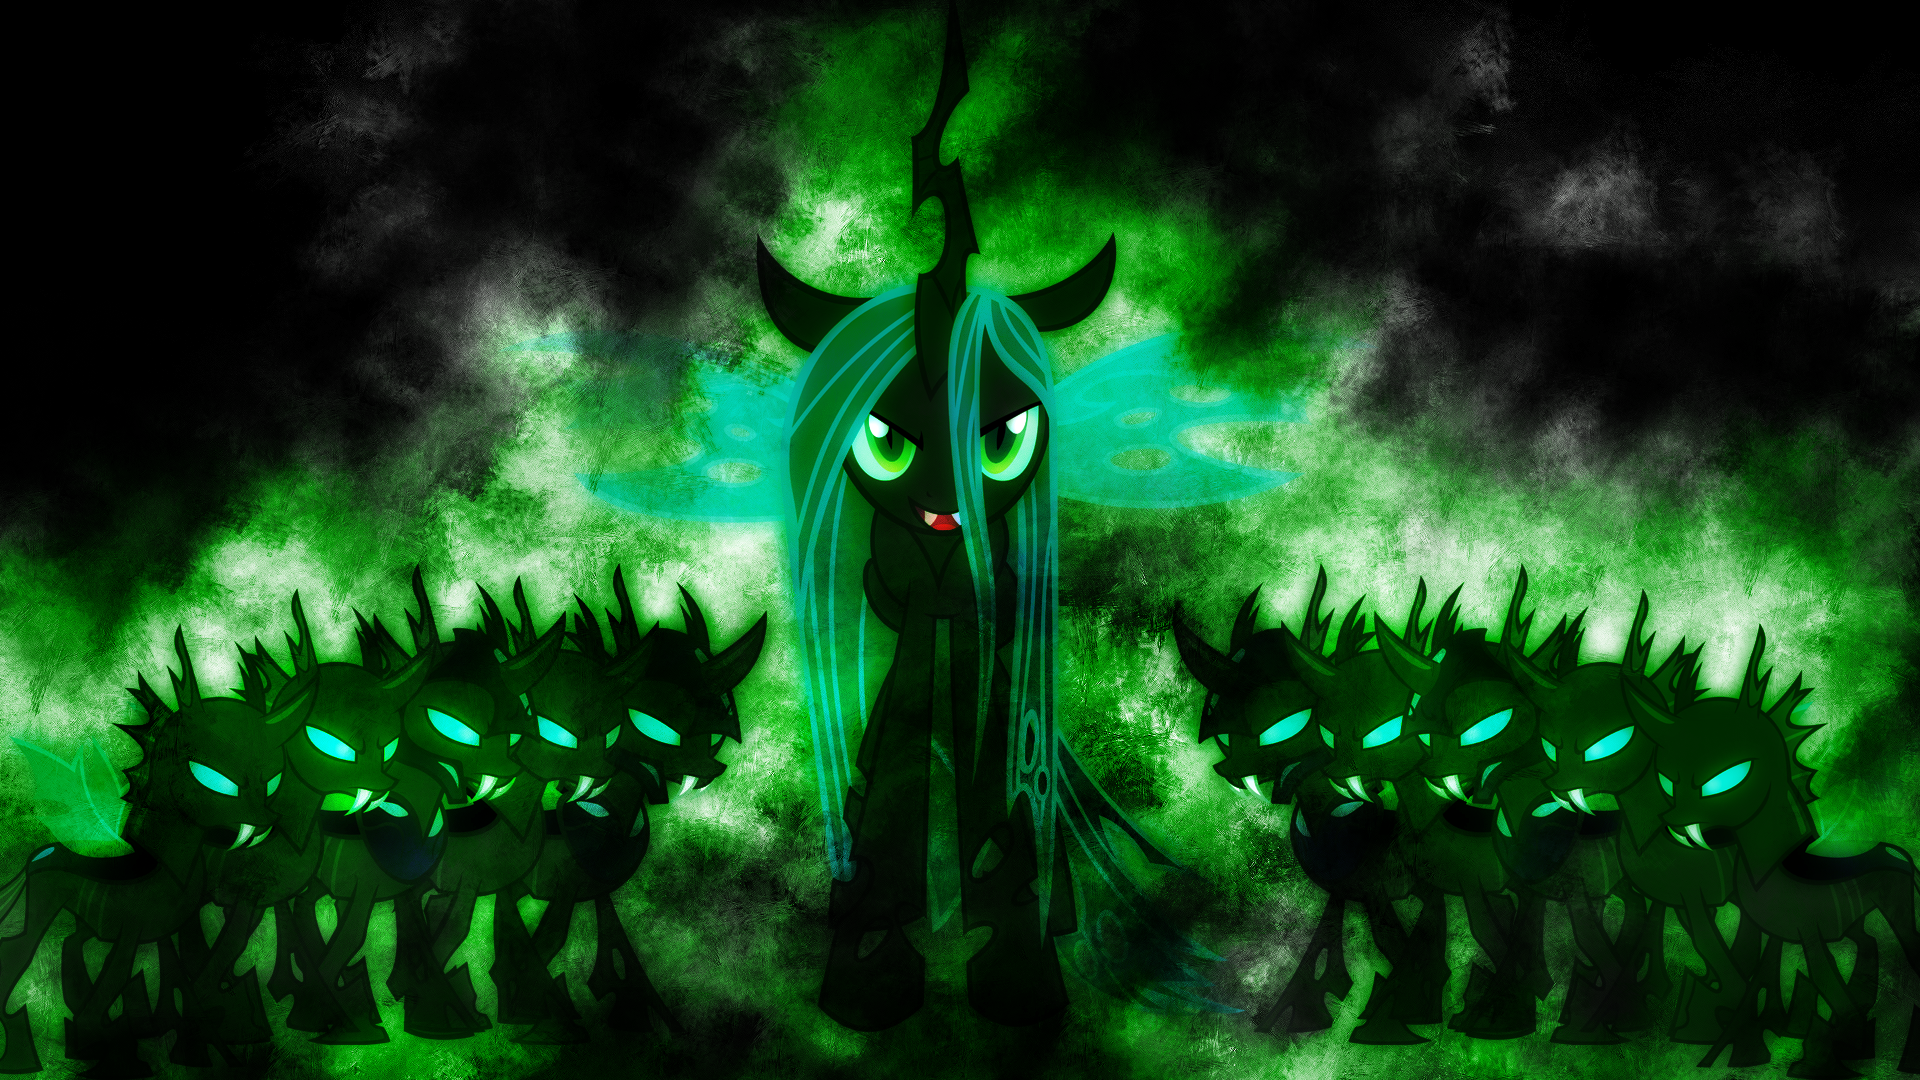 Queen Chrysalis: Emerald Flames of Magic (No text) by EnemyD